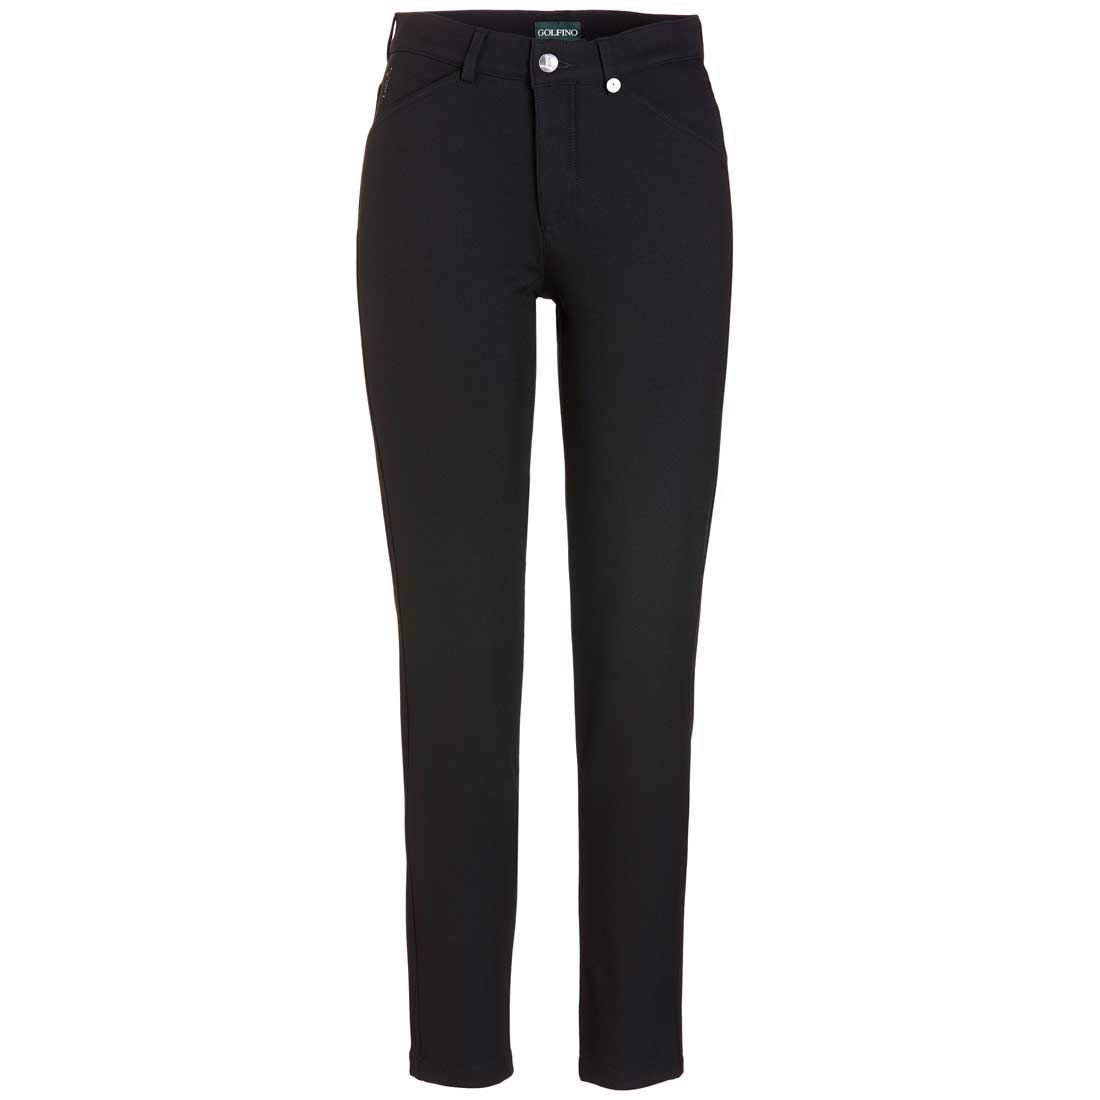 Ladies' Tech tweed 7/8 stretch Cold Protection golf trousers